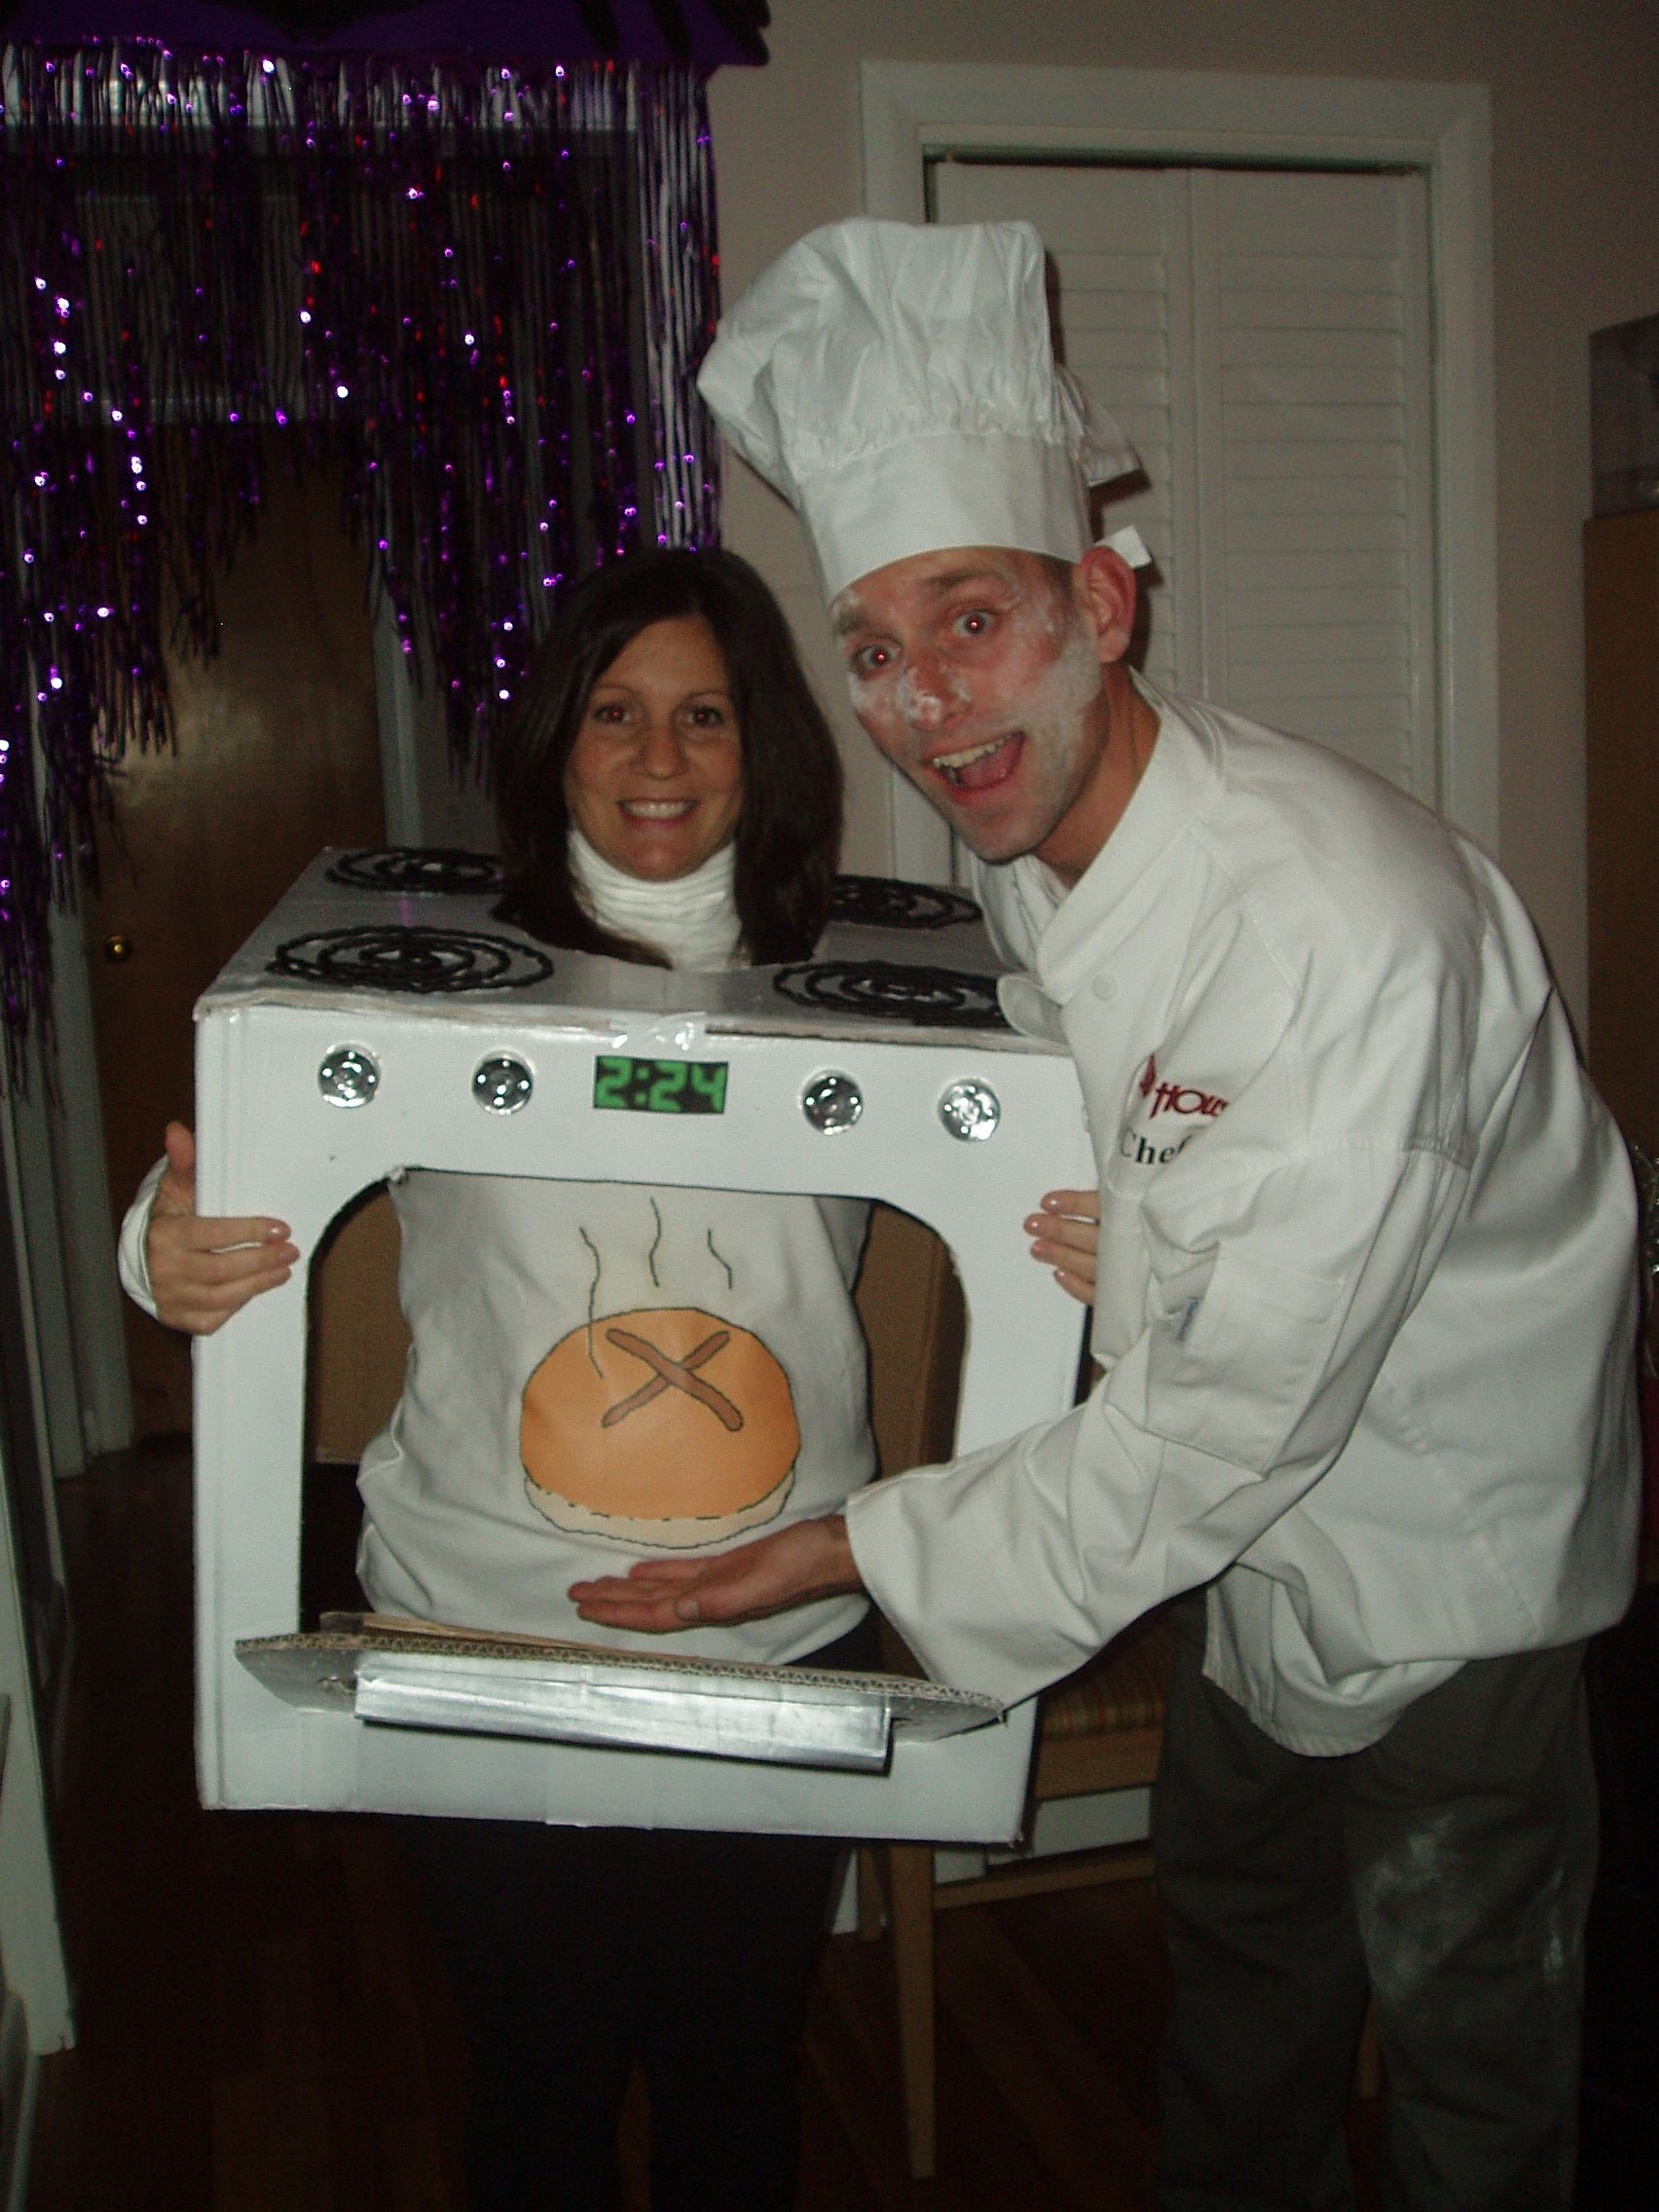 Best Pregnant Halloween Costume  sc 1 st  Pinterest & Best Pregnant Halloween Costume | For the preggos | Pinterest ...